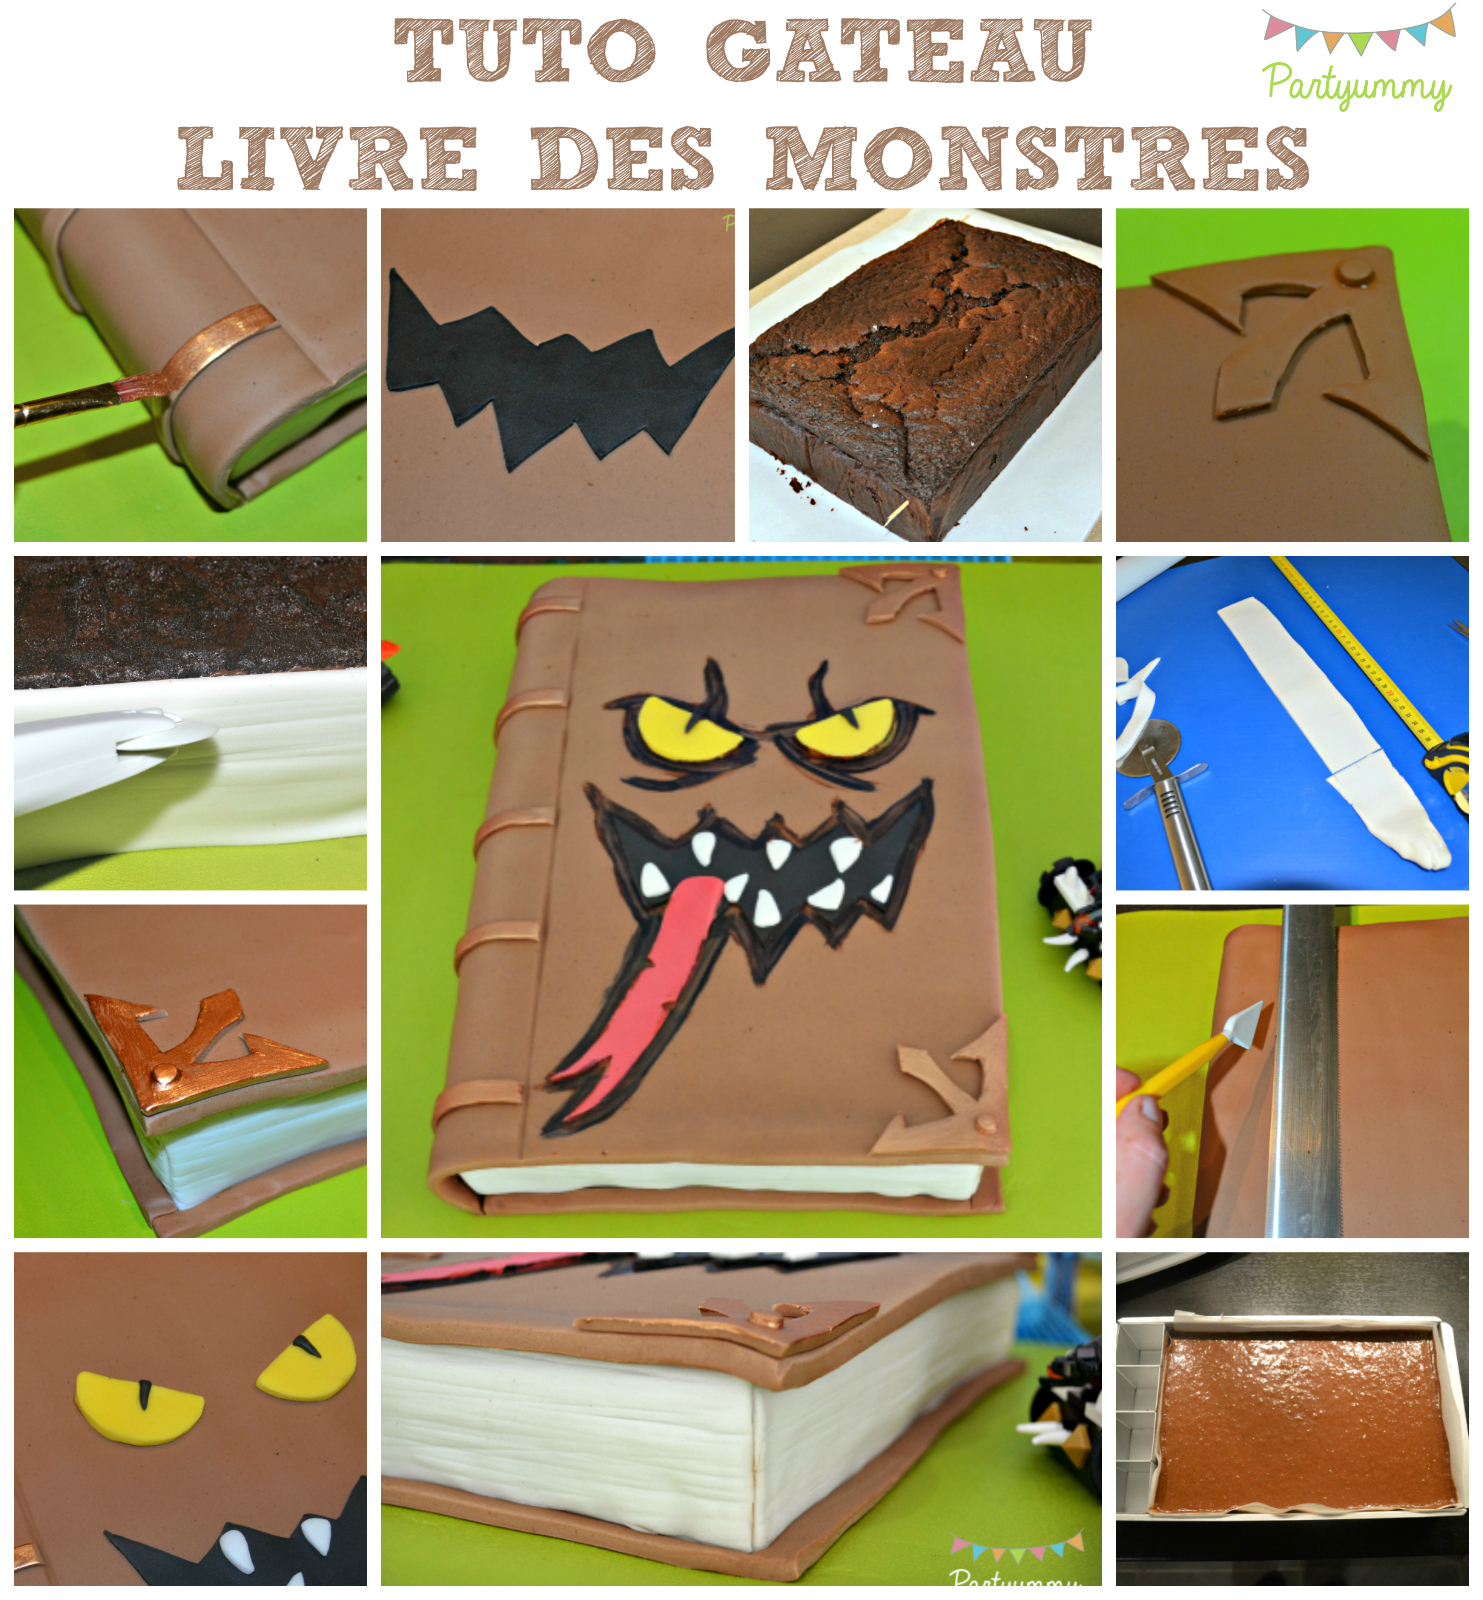 tuto-gateau-livre-des-monstres-nexo-kngihts-book-of-monsters-cake-2